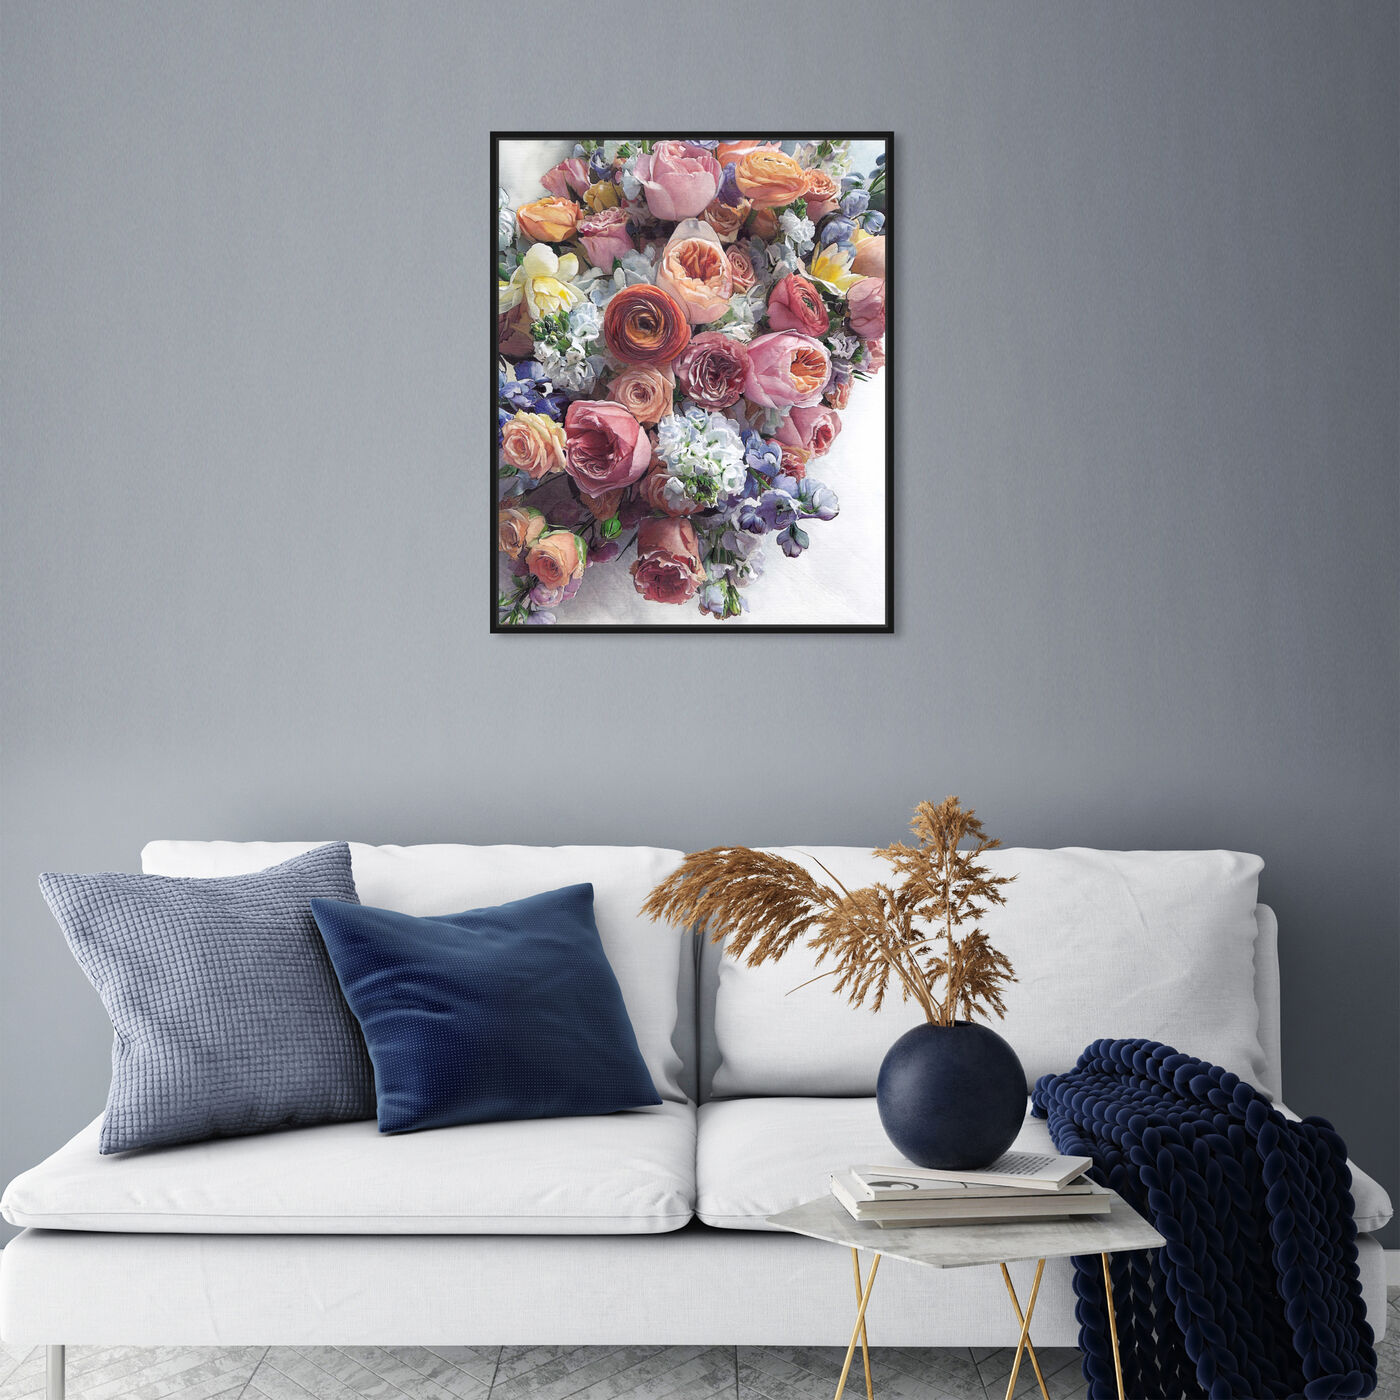 Hanging view of Summer Feelings featuring floral and botanical and florals art.